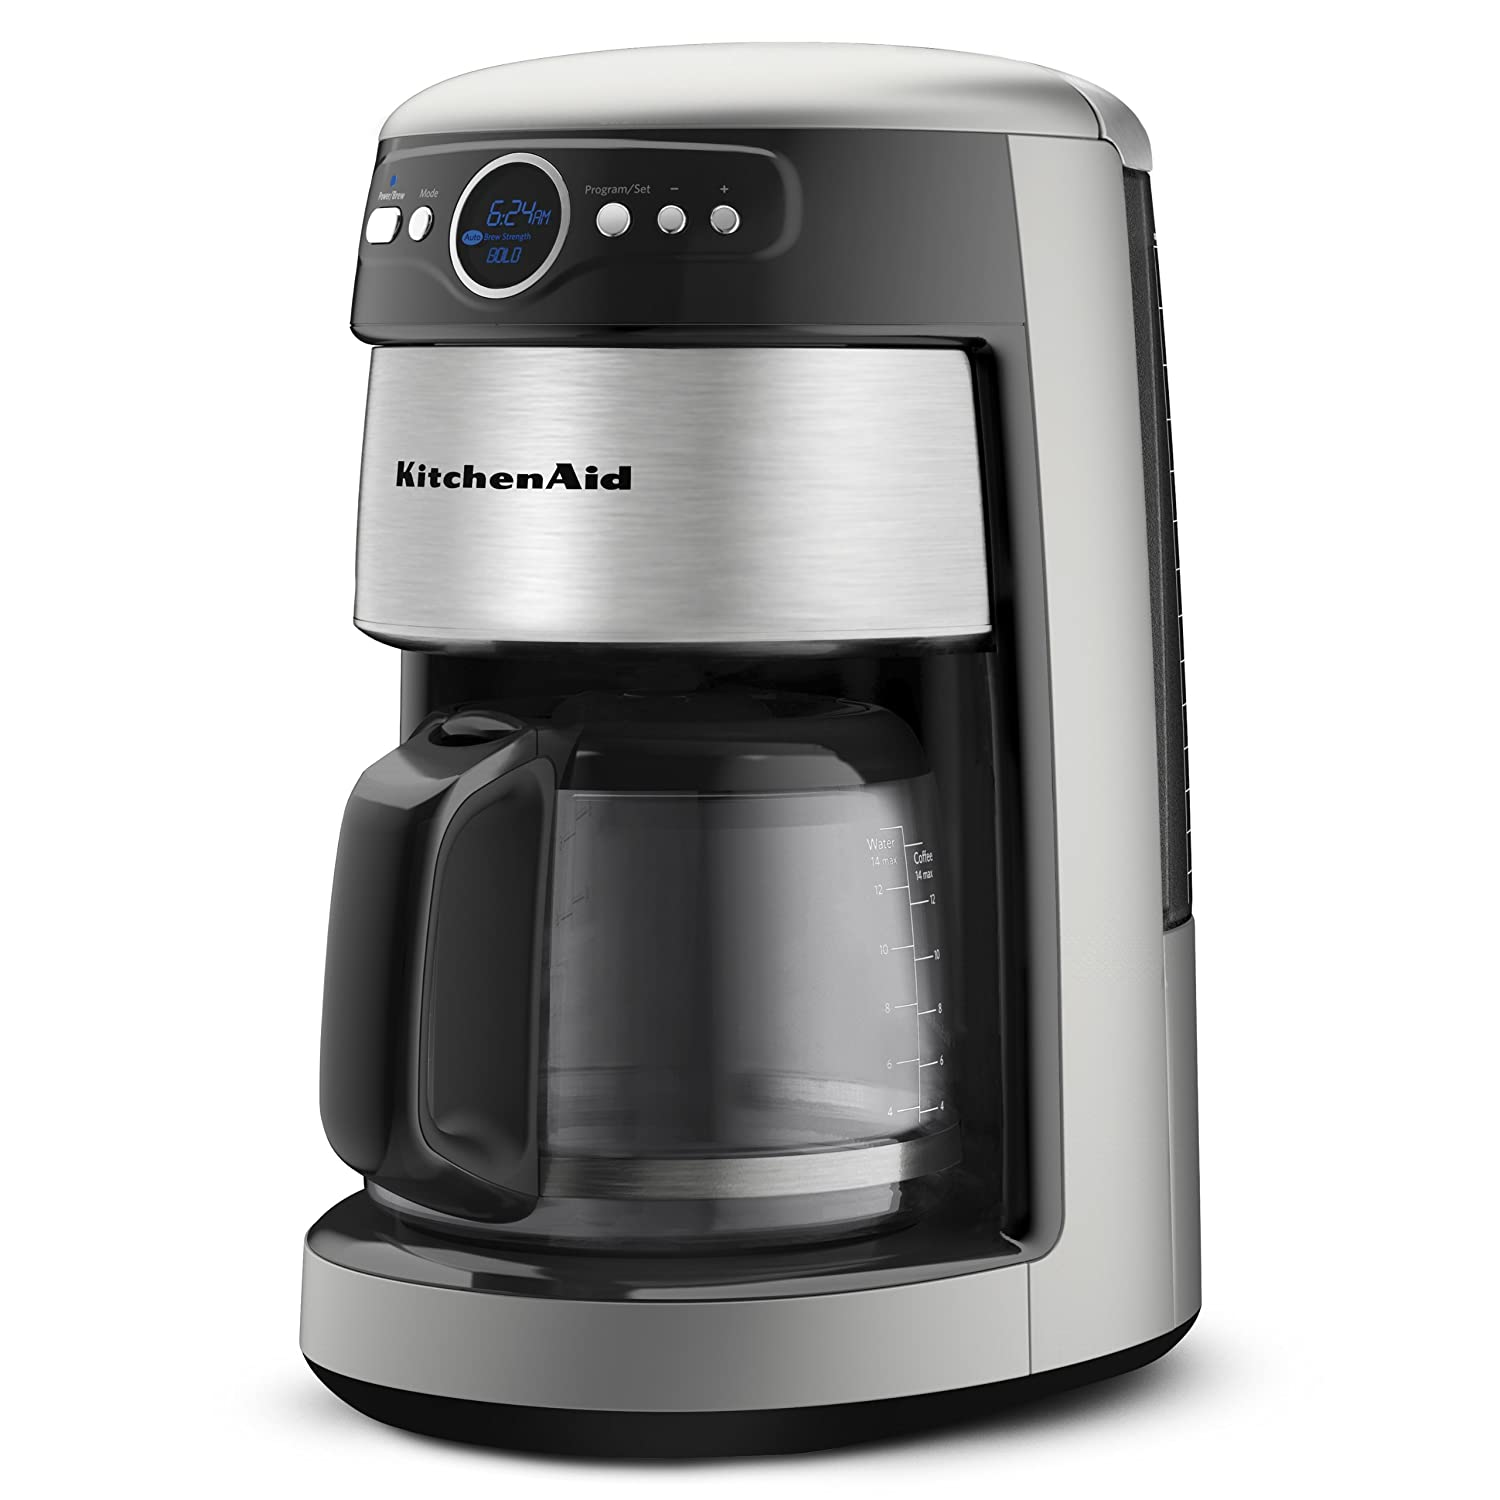 amazoncom kitchenaid kcm1402acs coffee maker 14 cup architect drip coffeemakers kitchen dining - Kitchen Aid Coffee Maker